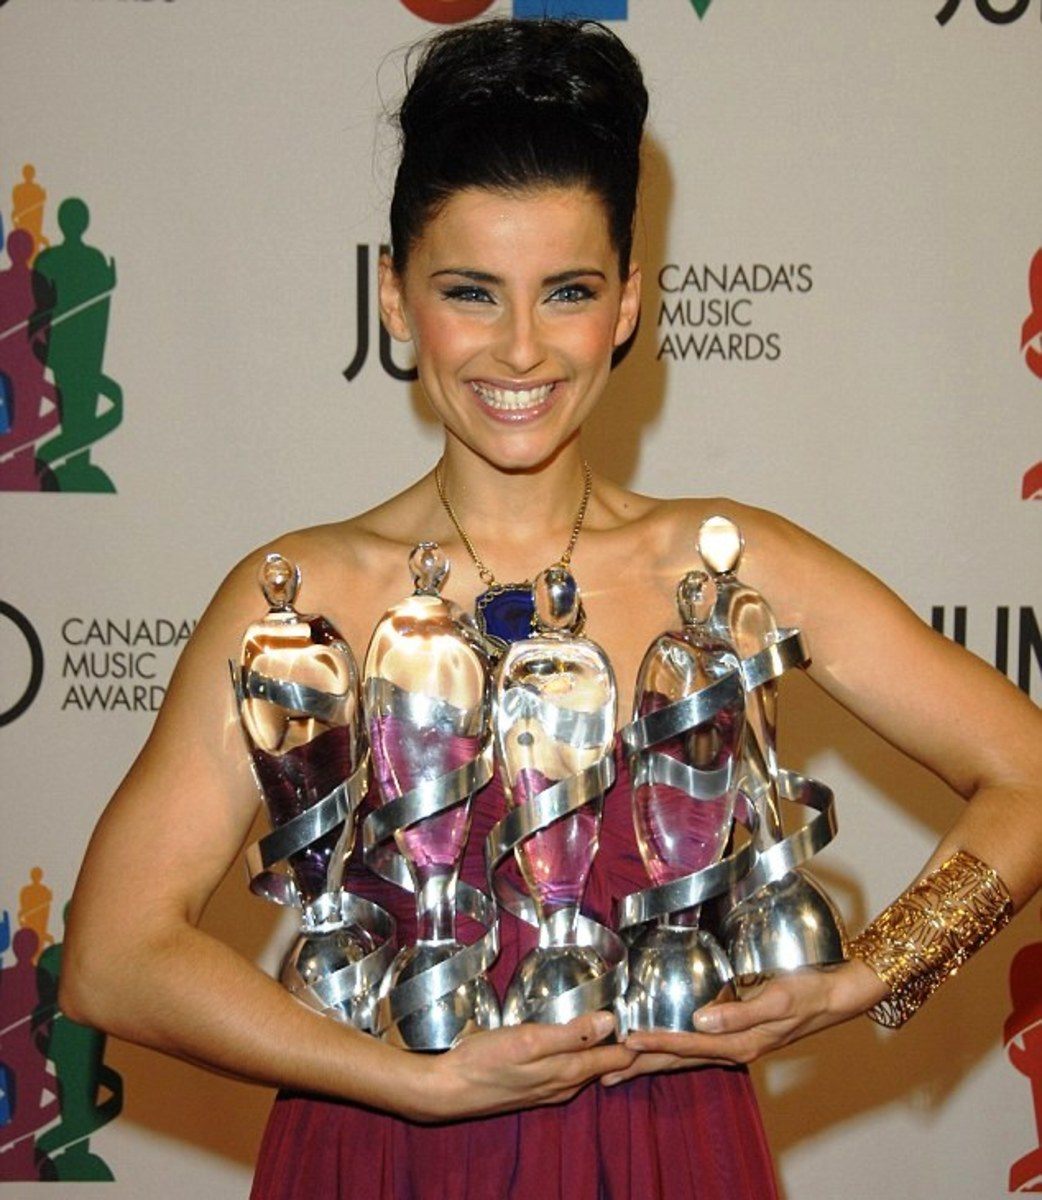 Nelly Furtado sweeps the 2007 Juno Awards